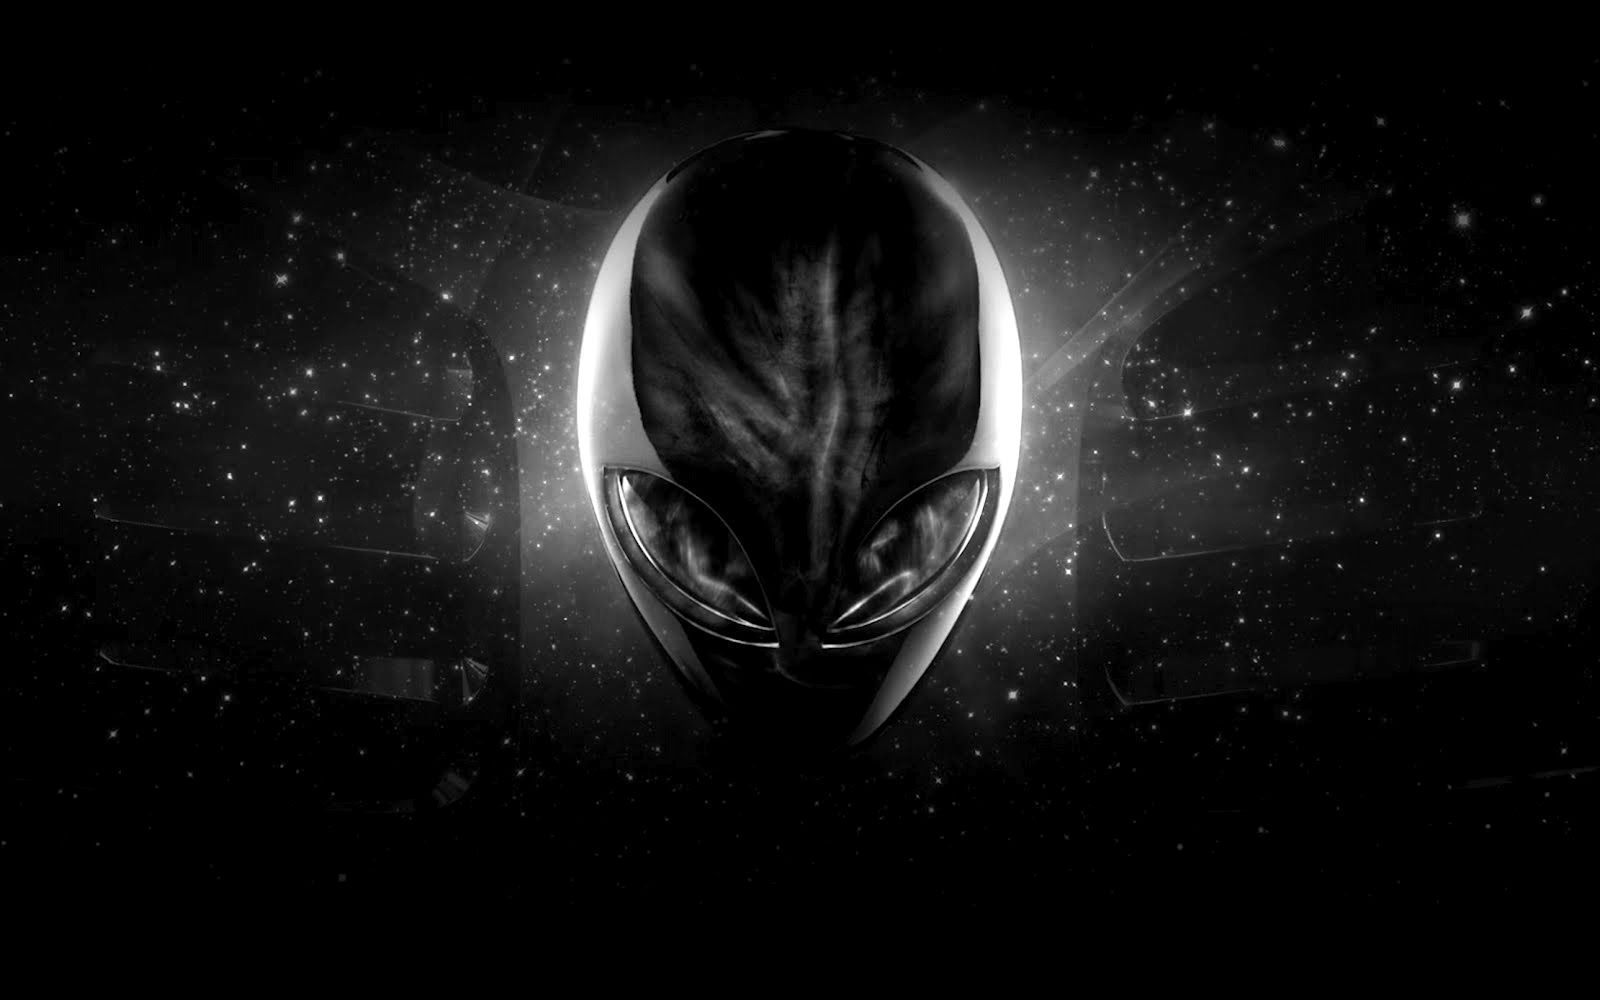 Alien Head HD desktop wallpaper High Definition